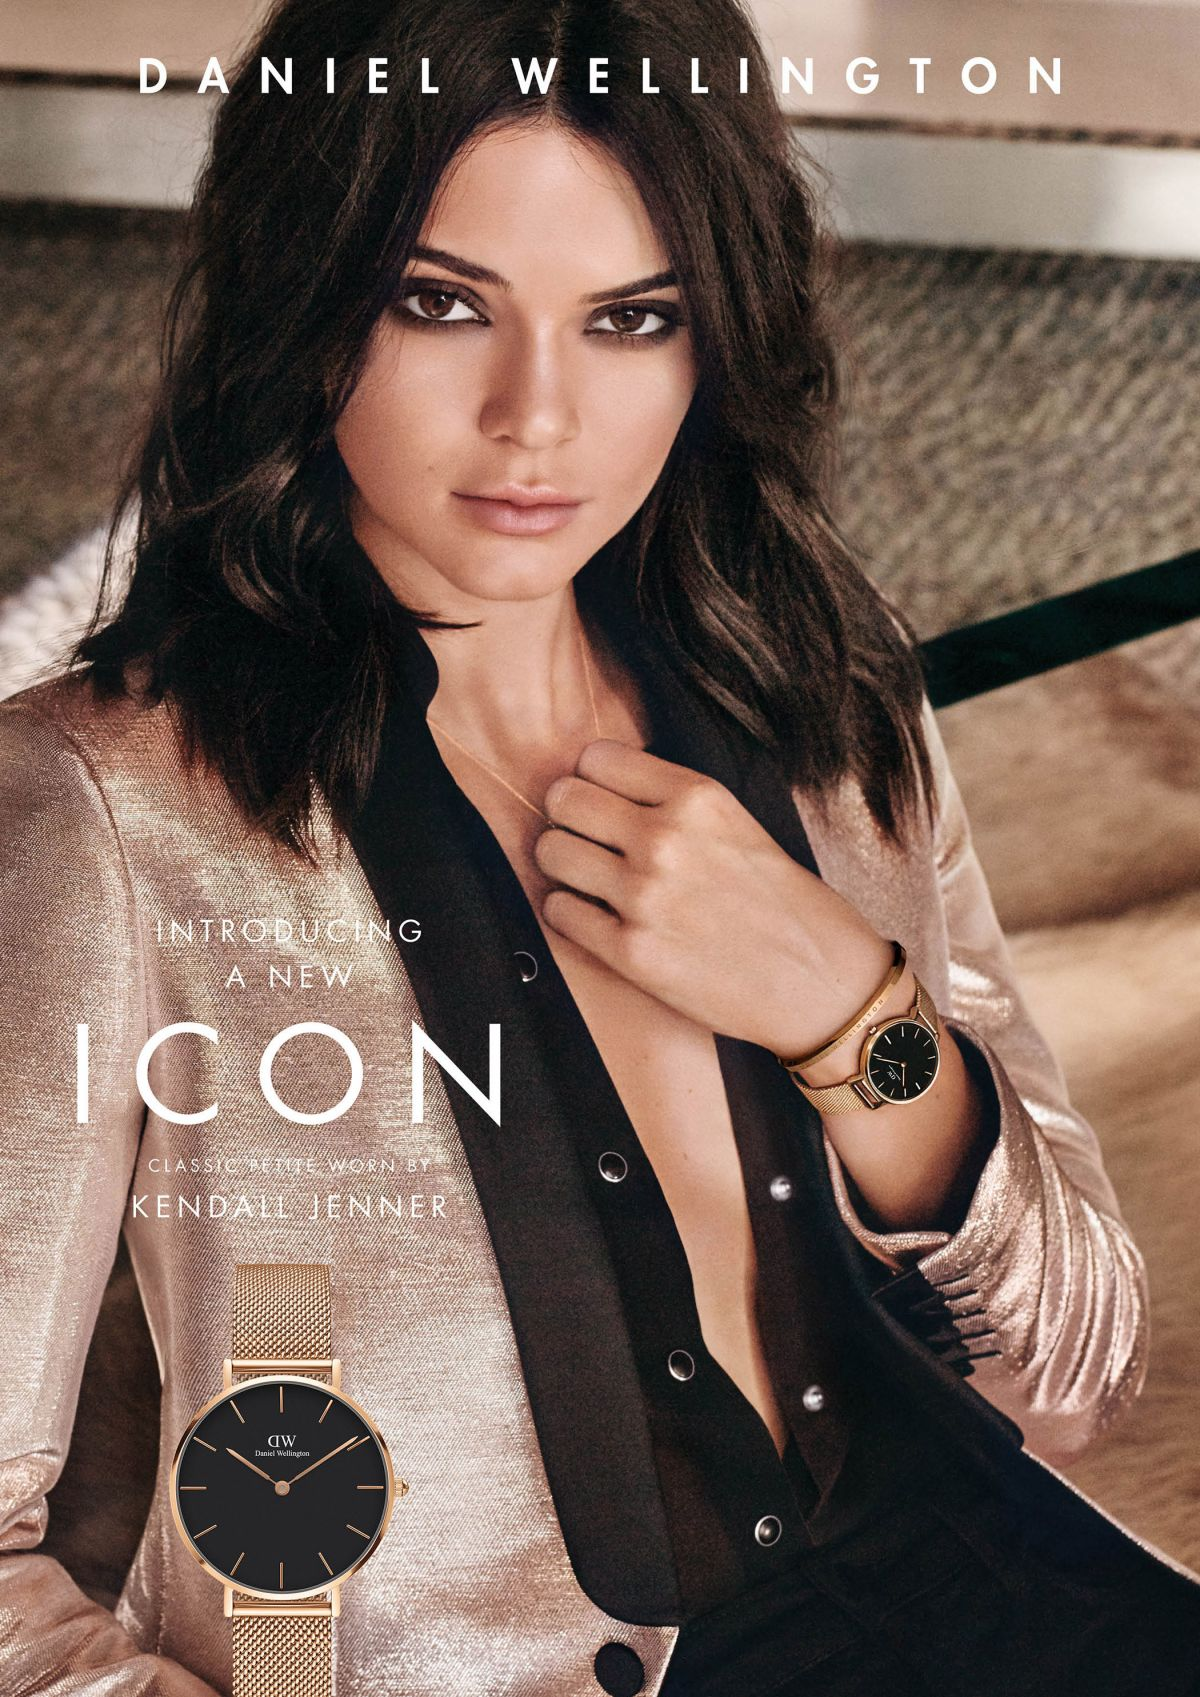 KENDALL JENNER for Daniel Wellington Campaign 2017